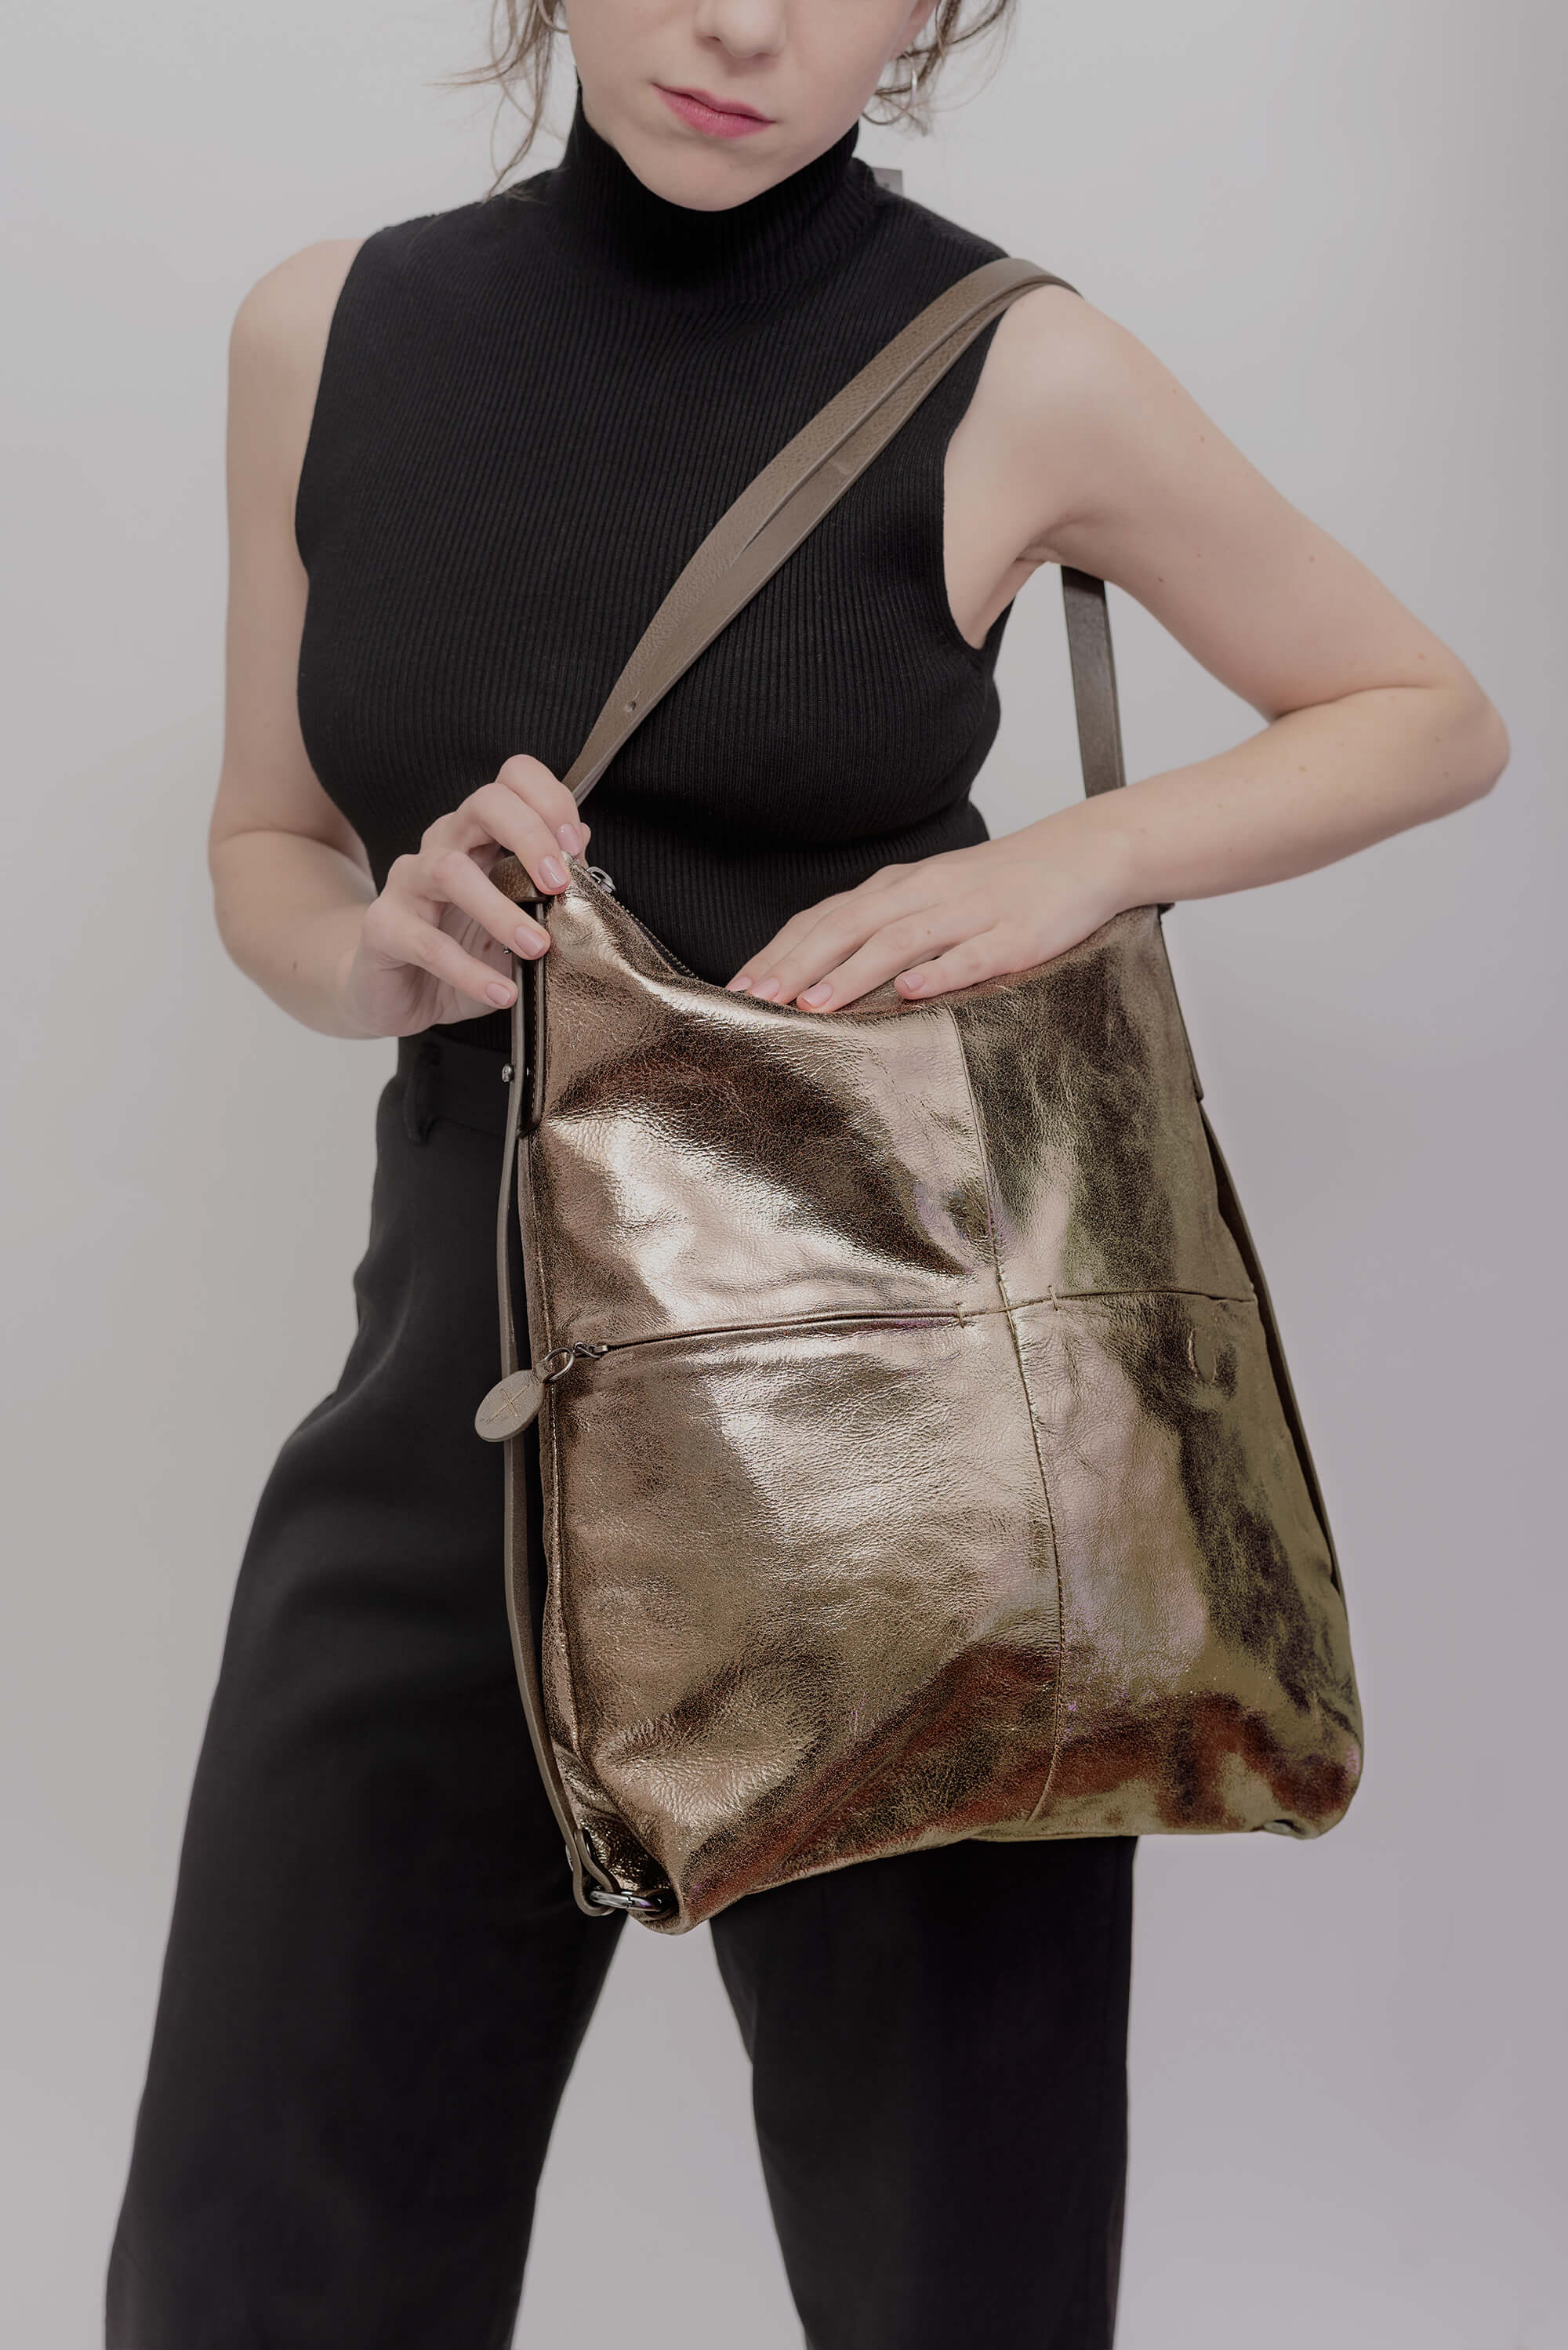 Ina Kent Crackled Anthra Leather Handbag/Backpack - MoMuse Jewellery